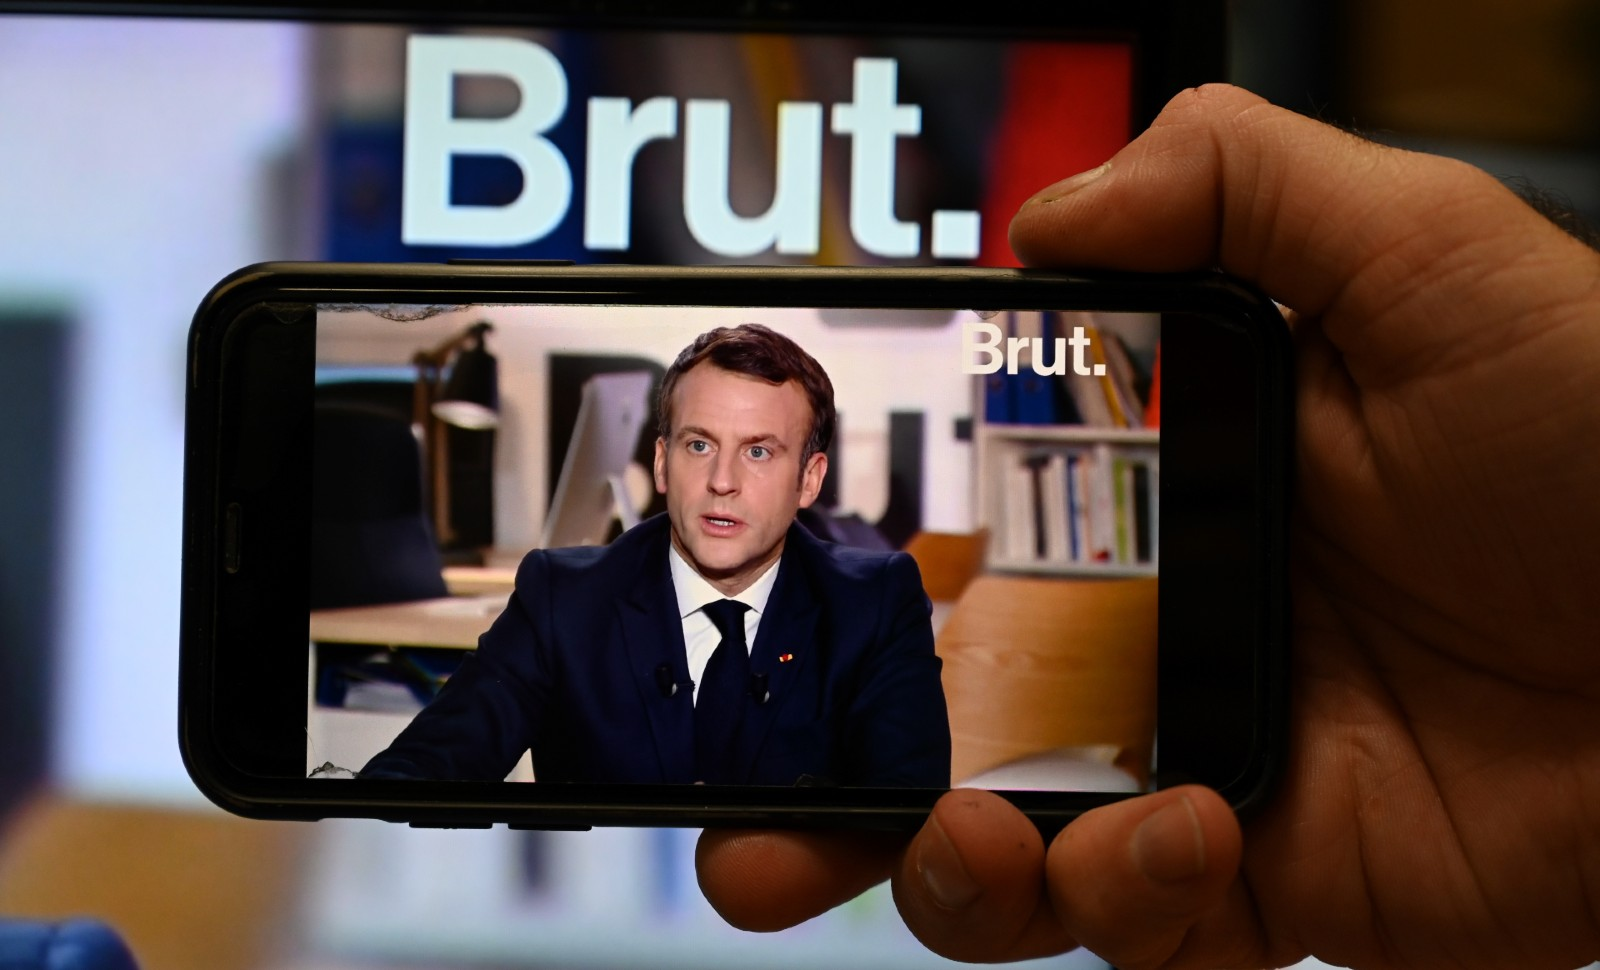 Emmanuel Macron lors de son interview accordée au média Brut © BERTRAND GUAY / AFP